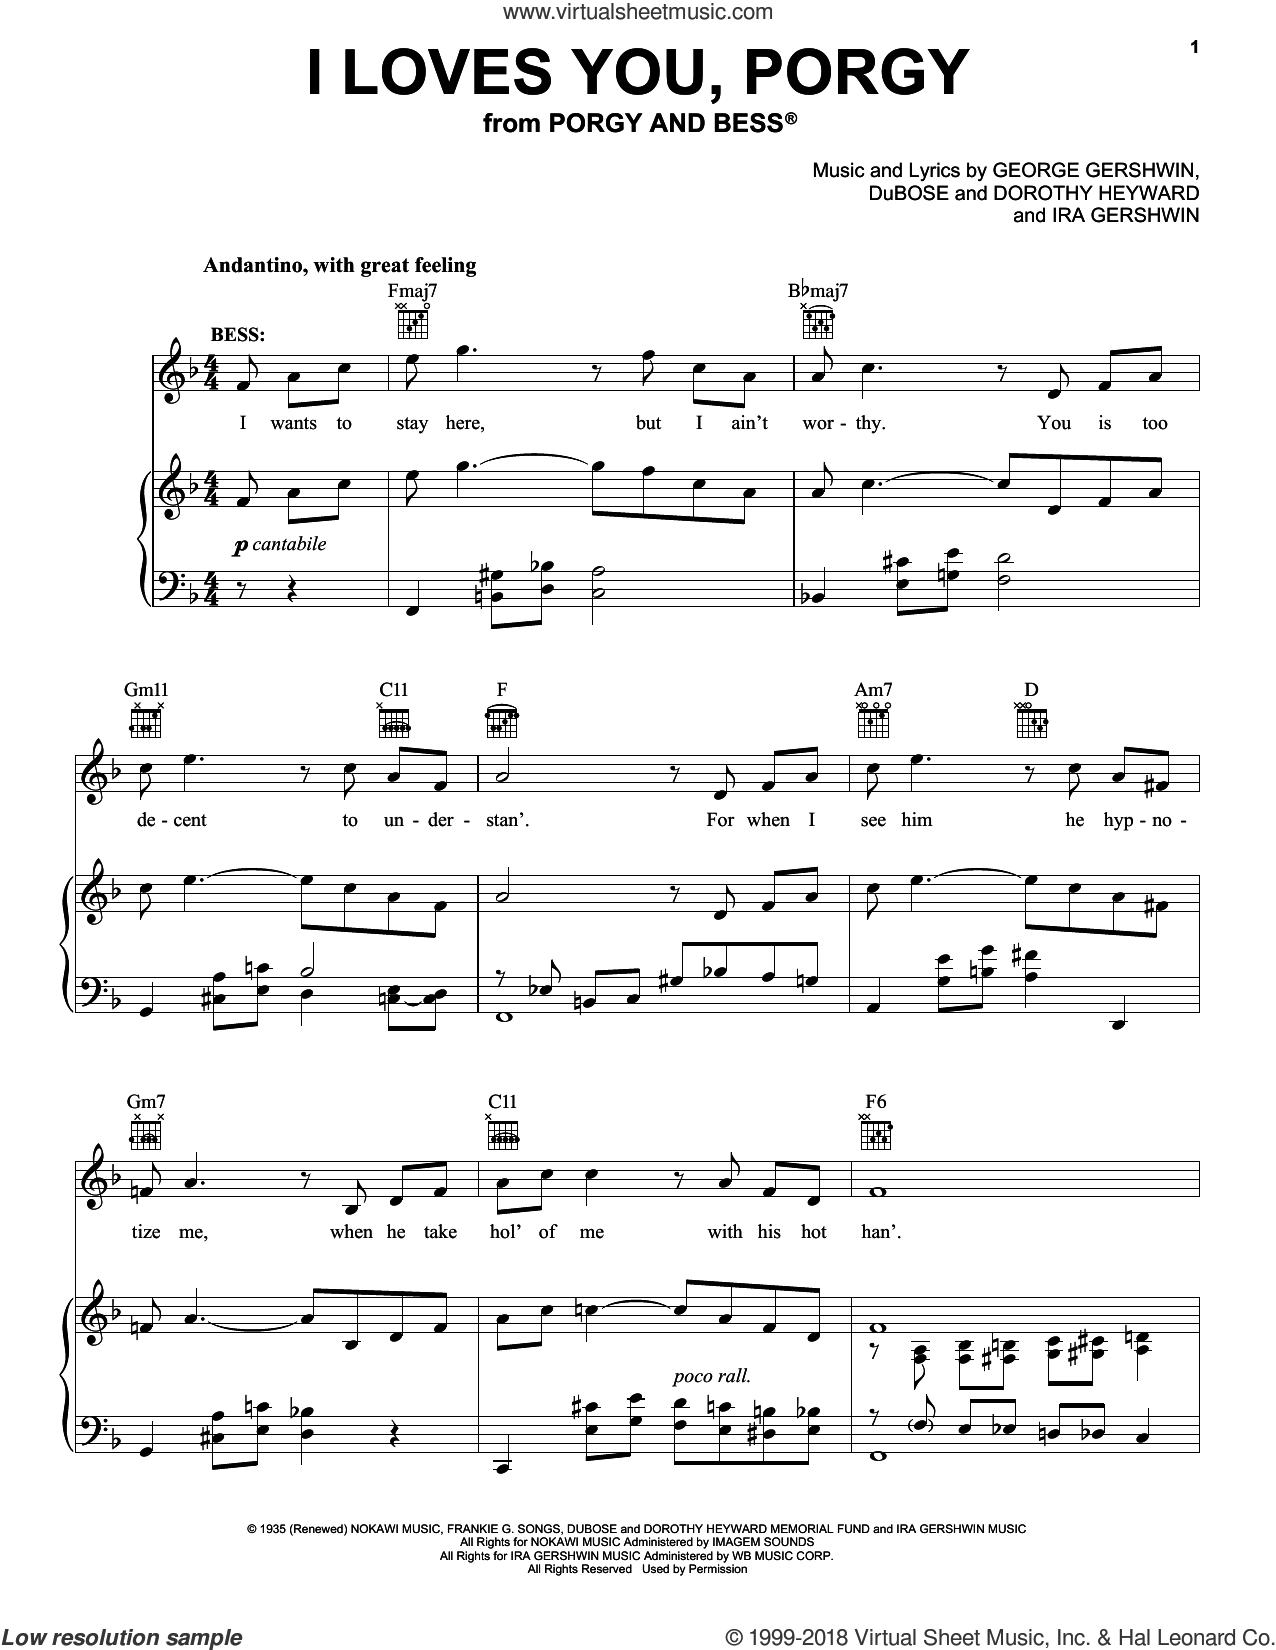 I Loves You, Porgy sheet music for voice, piano or guitar by George and Ira Gershwin, Dorothy Heyward, DuBose Heyward, George Gershwin and Ira Gershwin, intermediate skill level